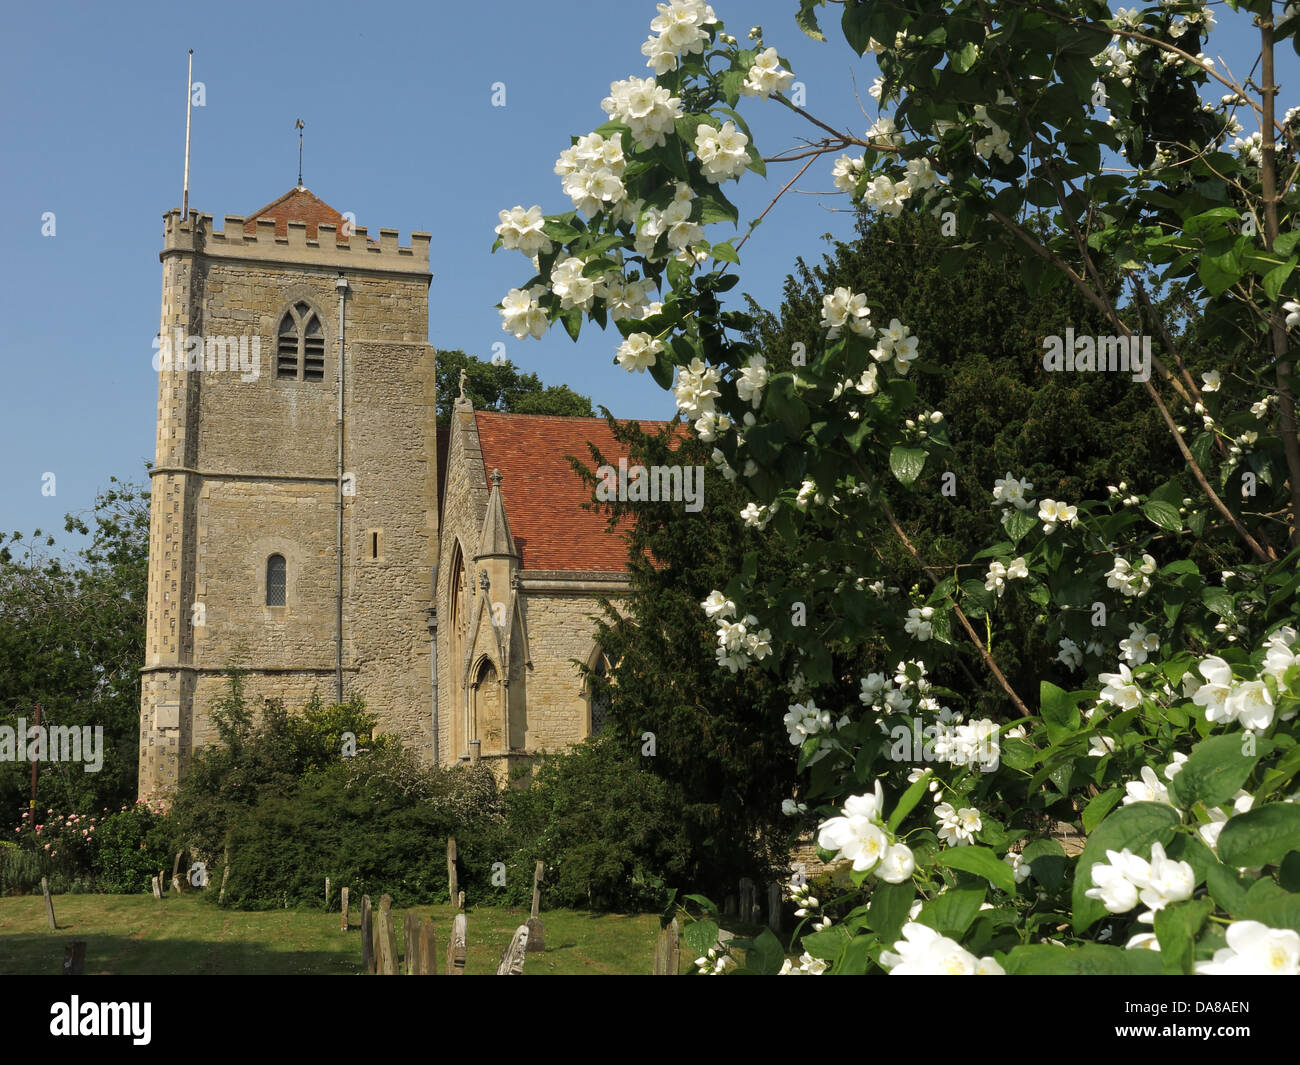 Beautiful,Dorchester,On,Thames,building,interior,of,St,Peter,&,St,Paul,HDR,oxen,oxford,oxfordshire,ancient,monument,summer,in,flower,flowers,graveyard,Gotonysmith monuments NT,Buy Pictures of,Buy Images Of